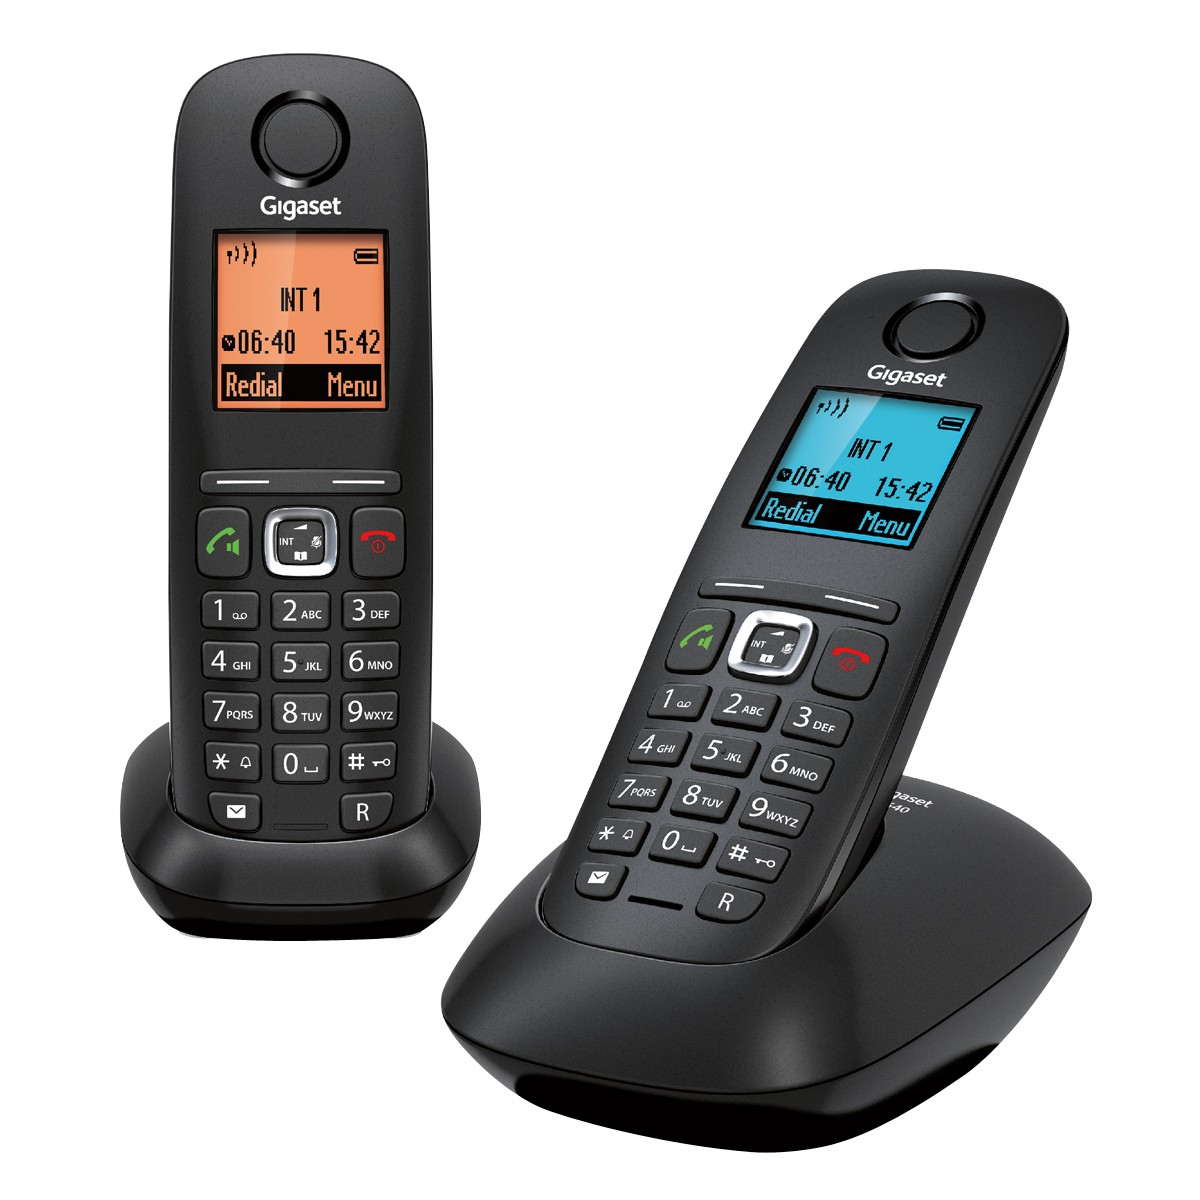 a540 duo black gigaset mobile phone